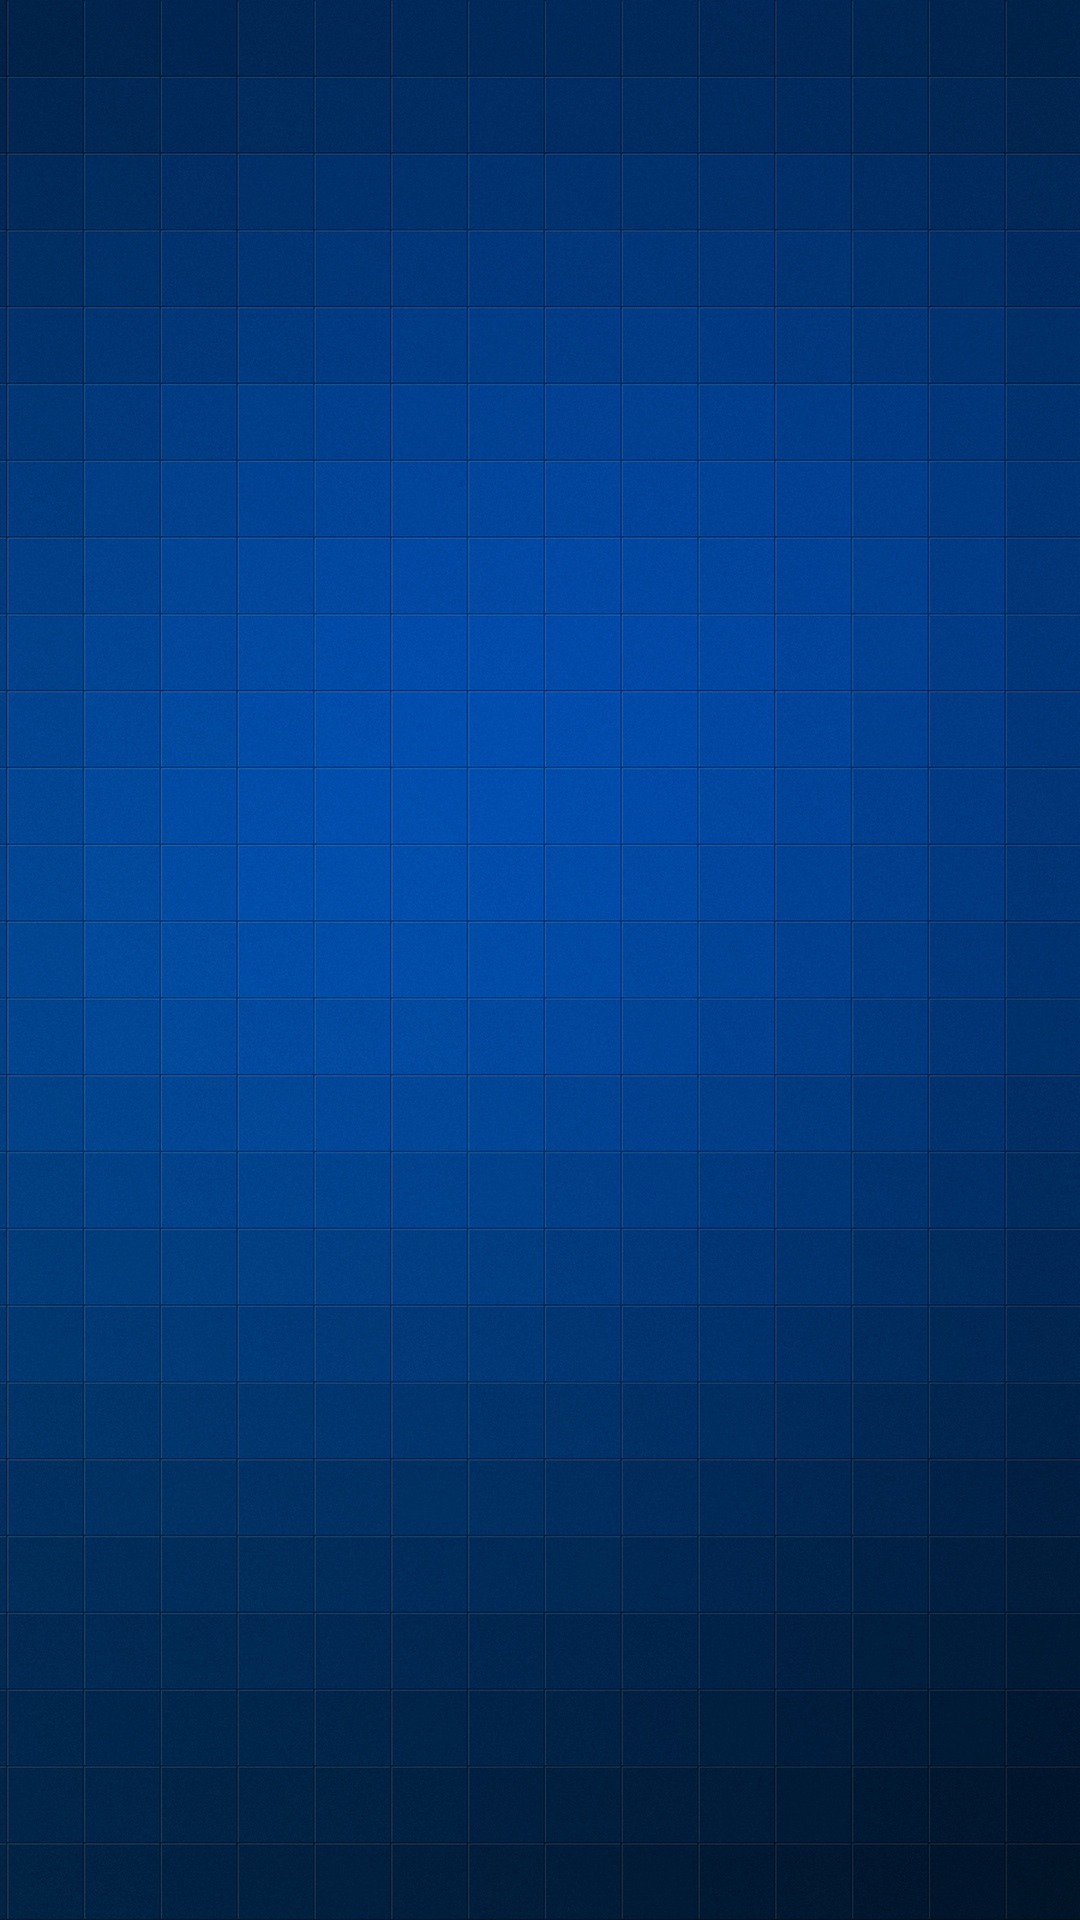 Cal Bellini Wallpapers Blue Square Pattern Blue Square Pattern Gradient